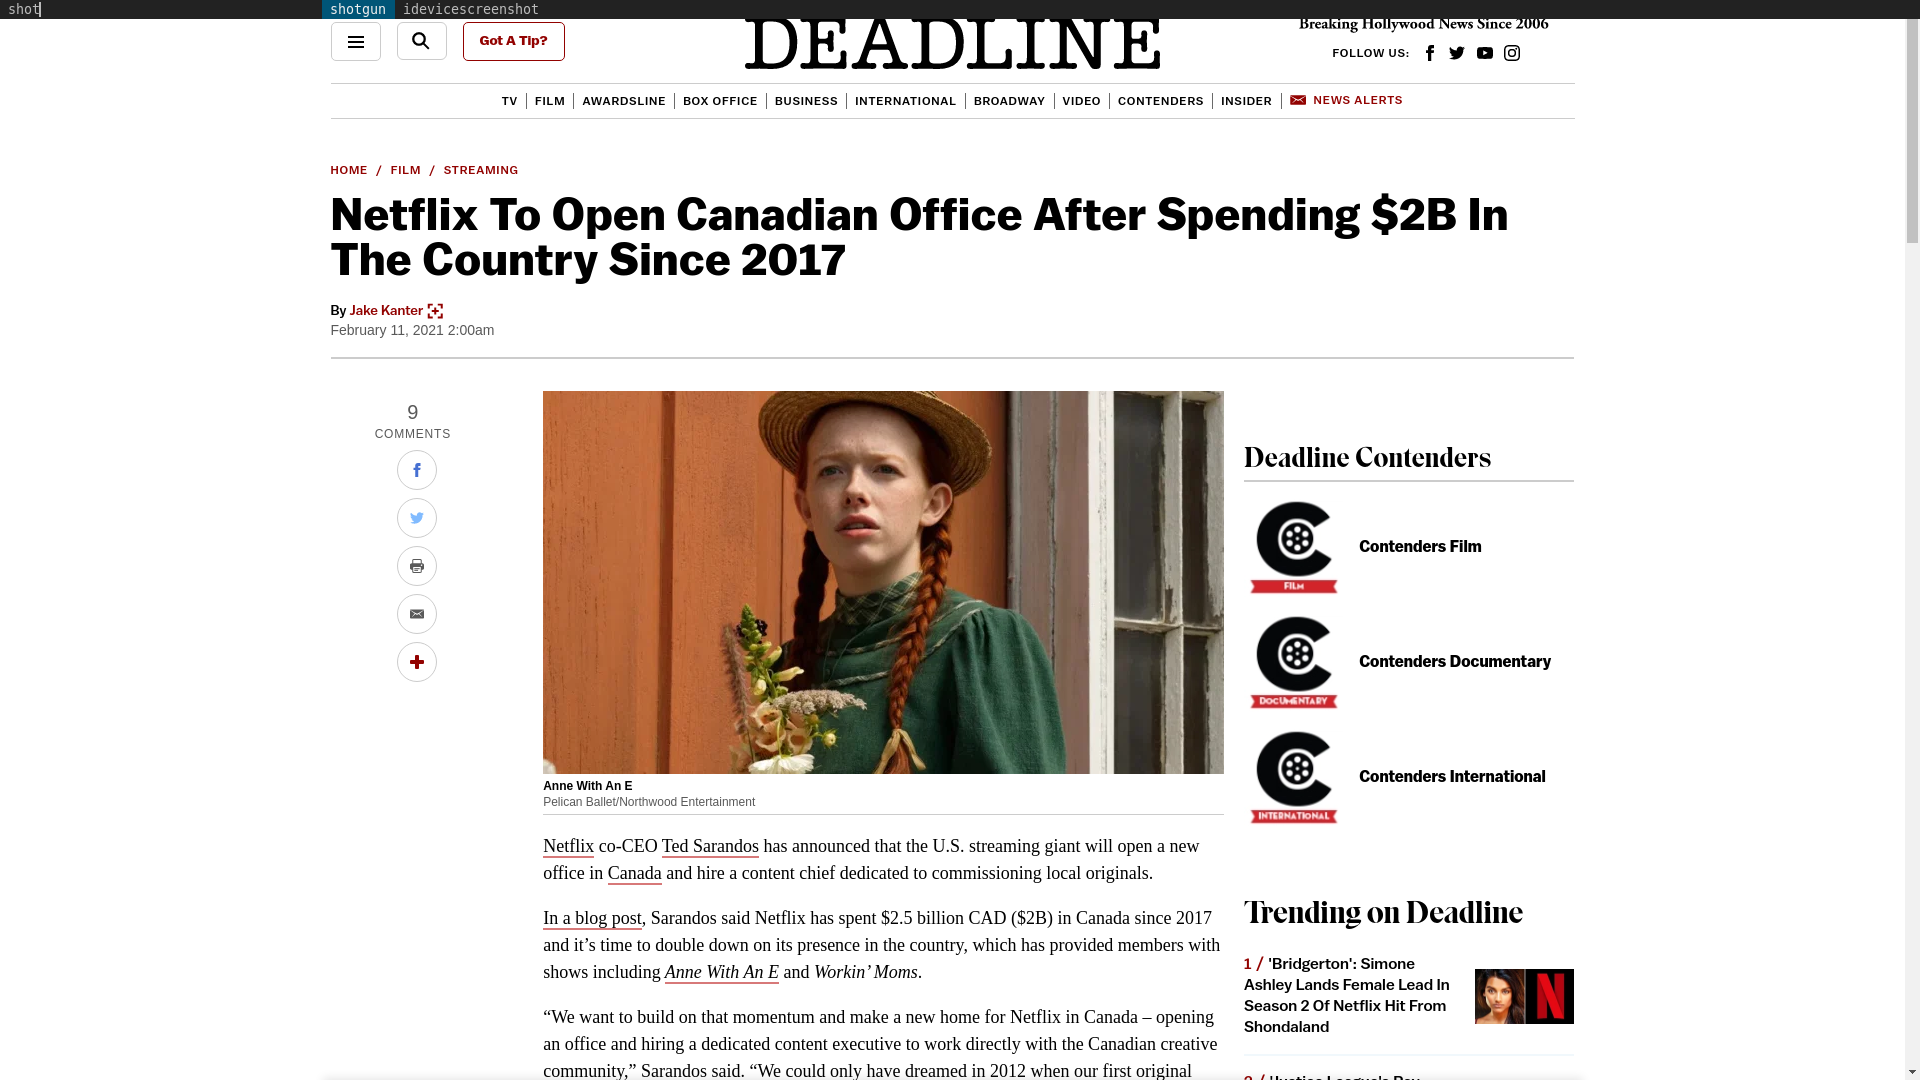 Fairness Rocks News Netflix To Open Canadian Office After Spending $2B In The Country Since 2017